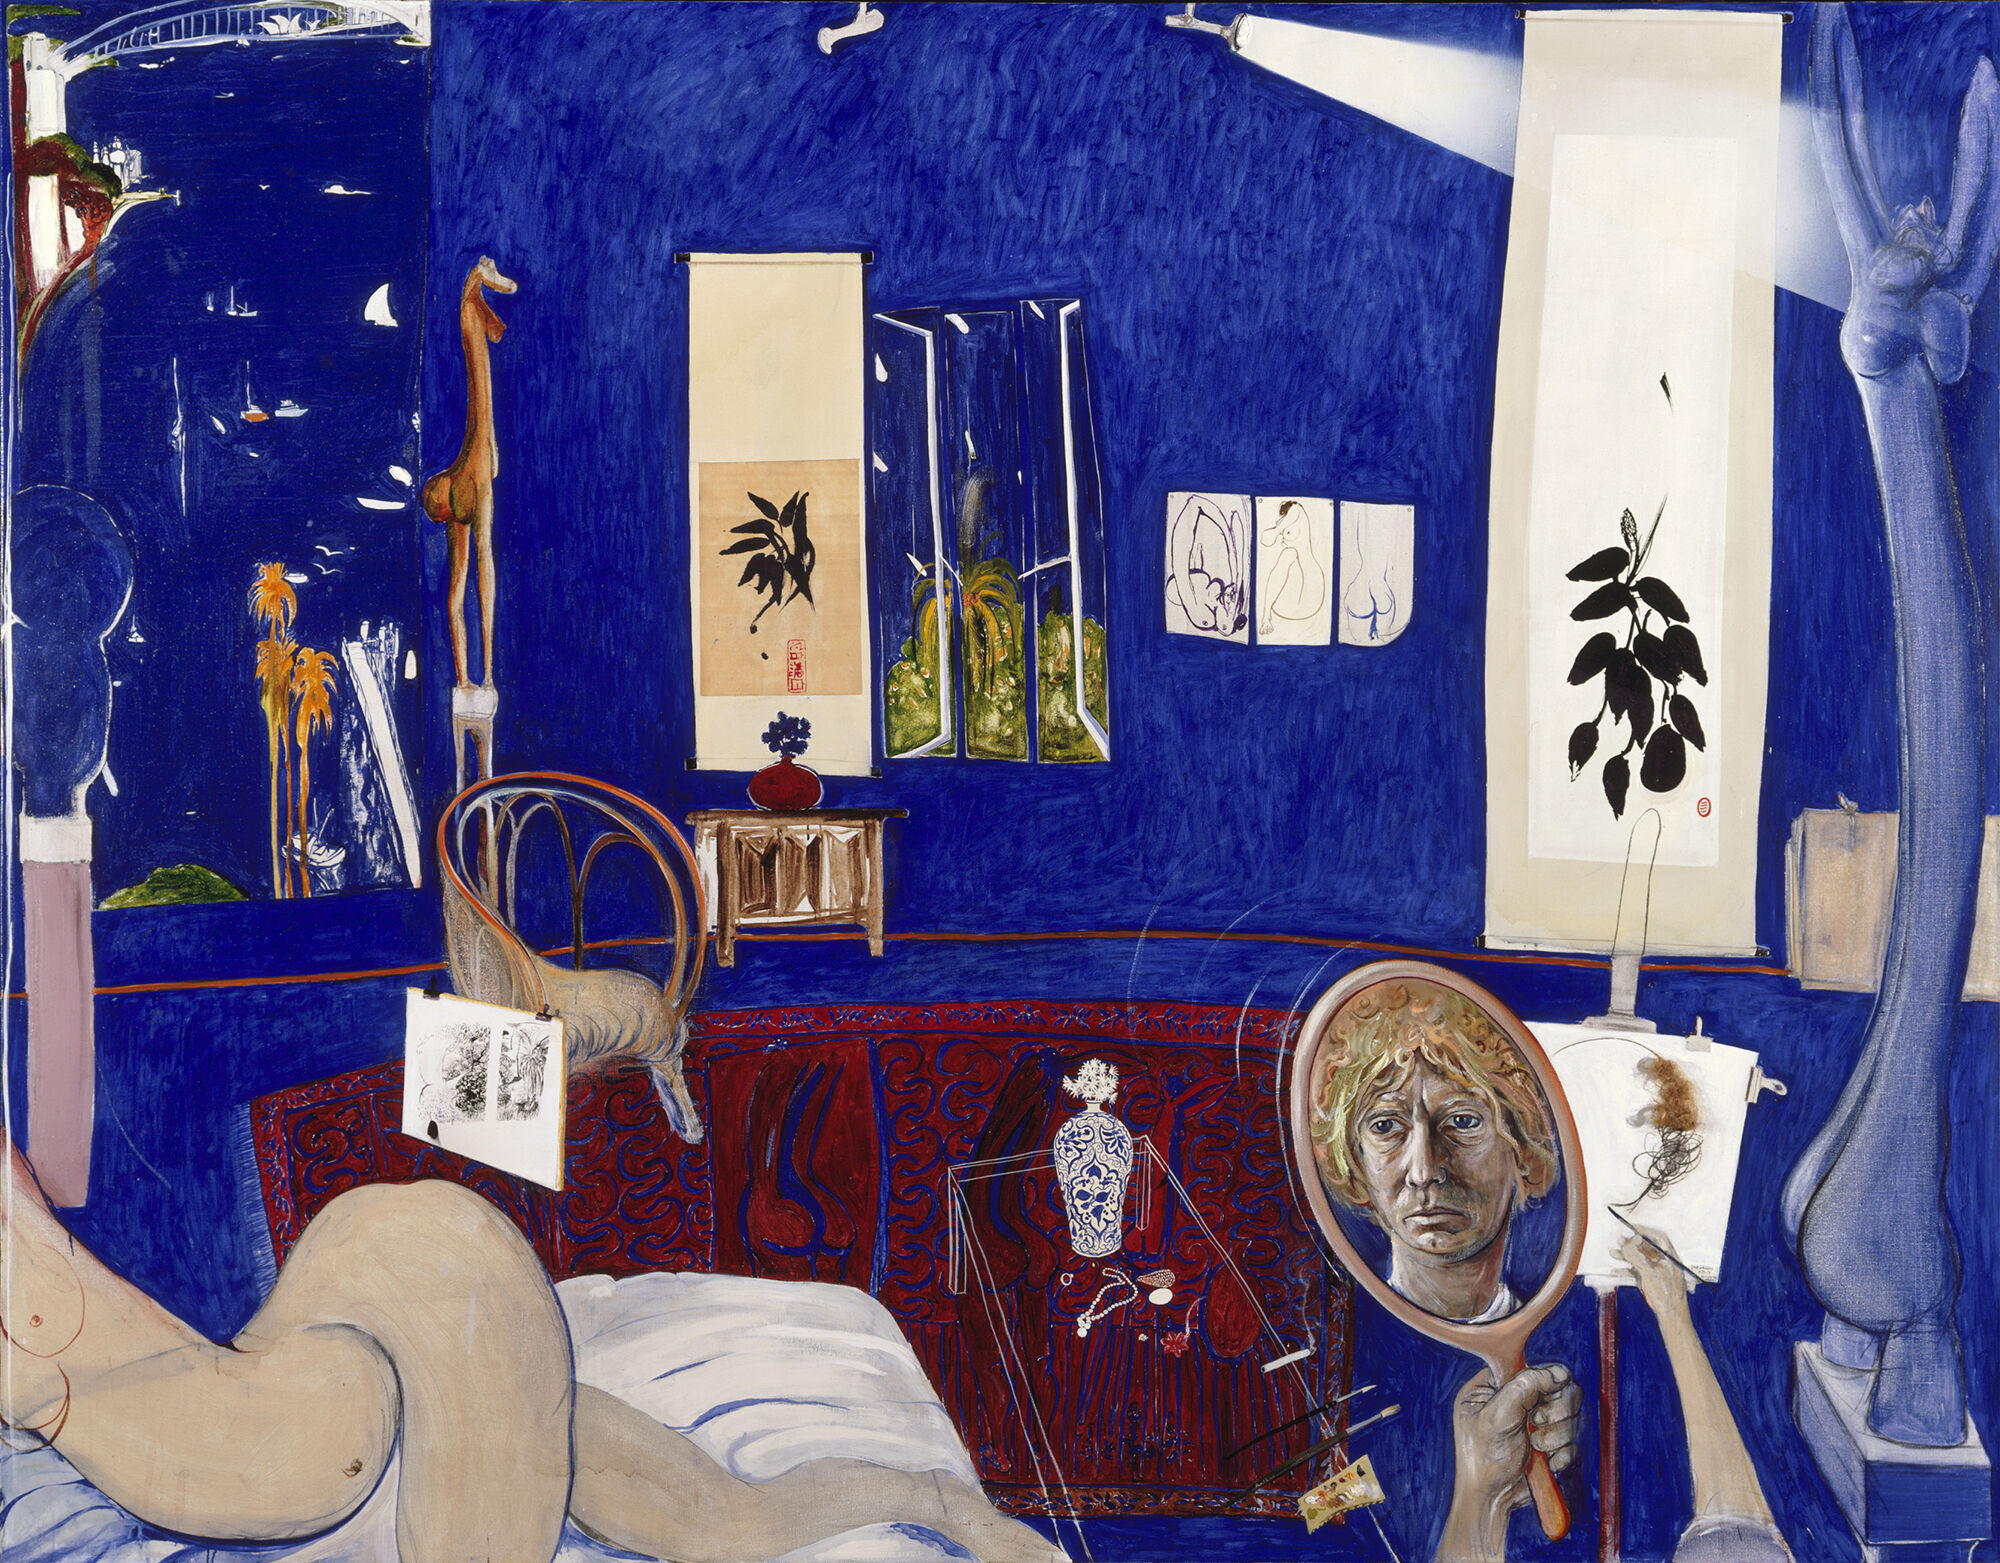 Brett Whiteley. Self portrait in the studio 1976. oil, collage, hair on canvas, 200.5 x 259 cm. Art Gallery of New South Wales. Purchased 1977 © Wendy Whiteley Photo: AGNSW